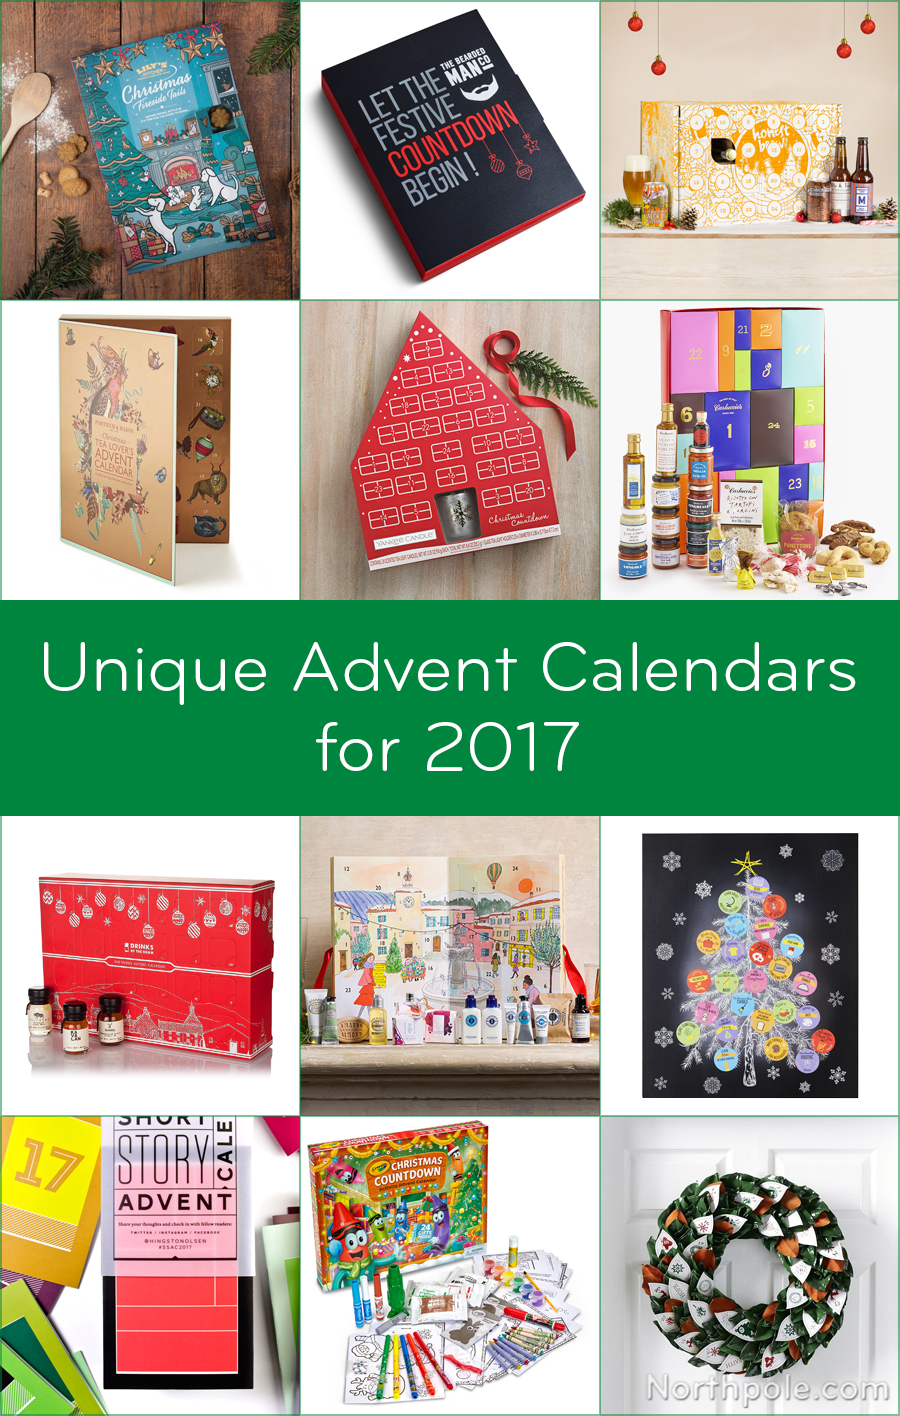 Unique Advent Calendars for 2017